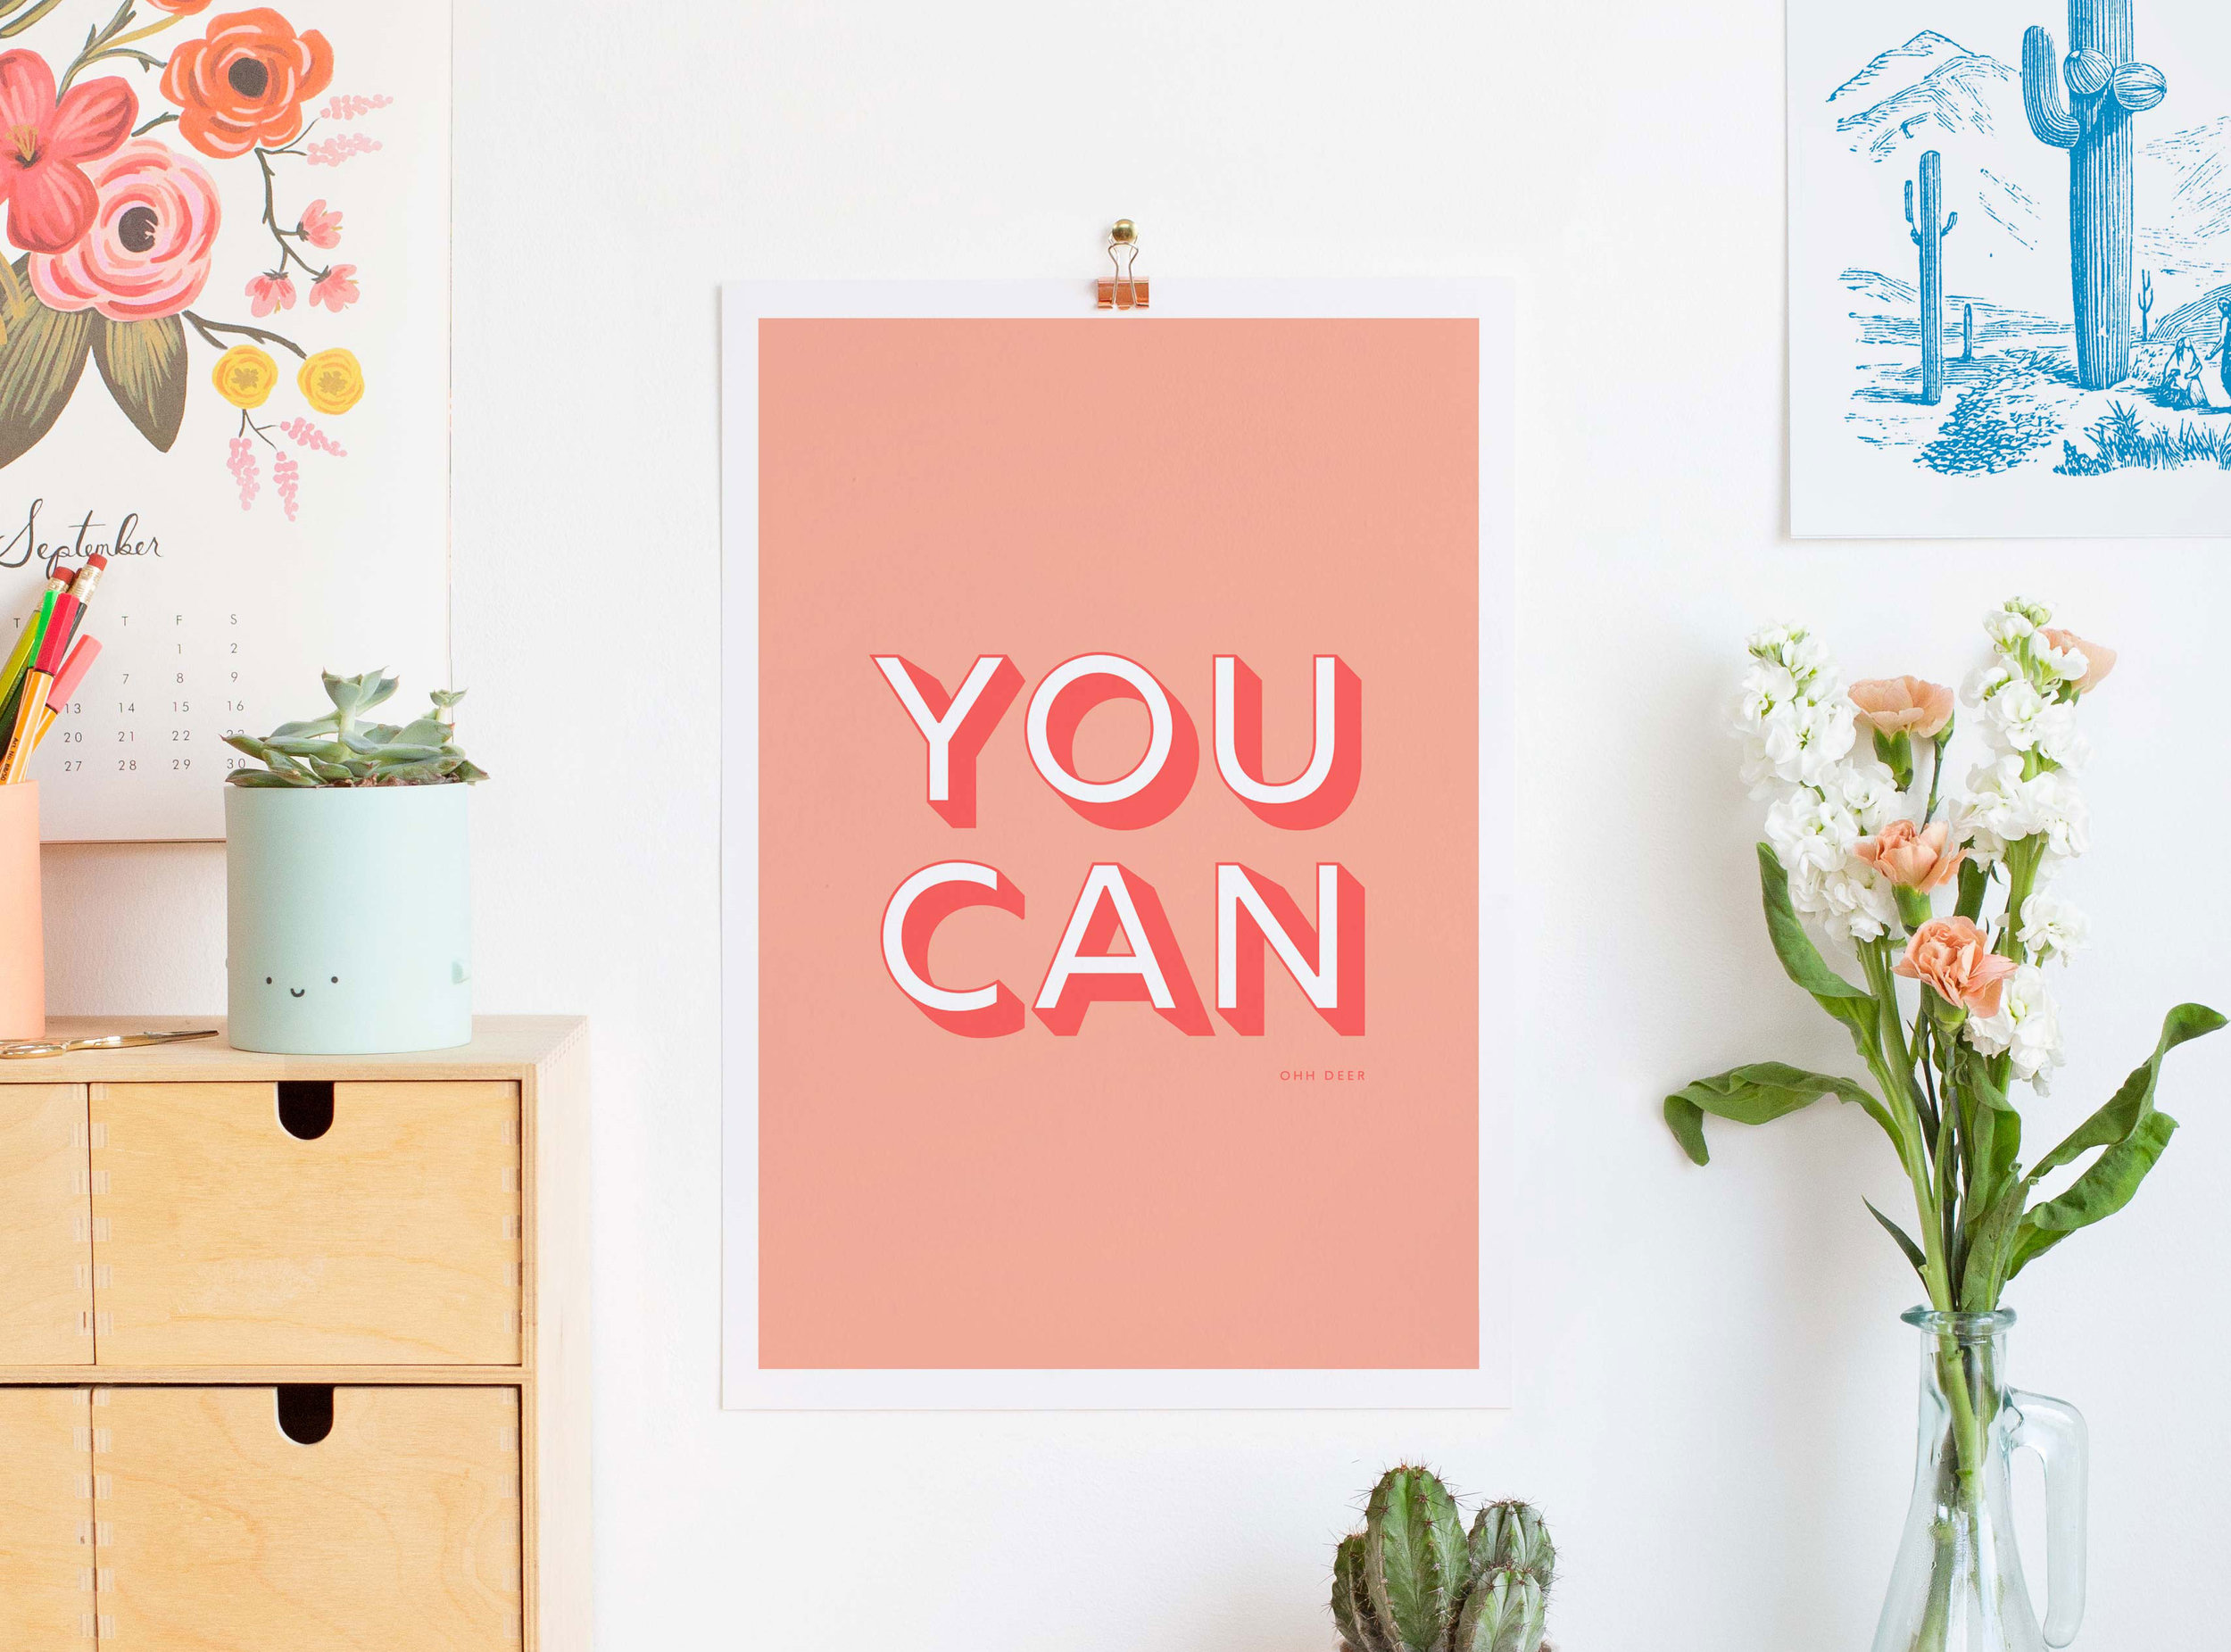 YOU-CAN-1.jpg